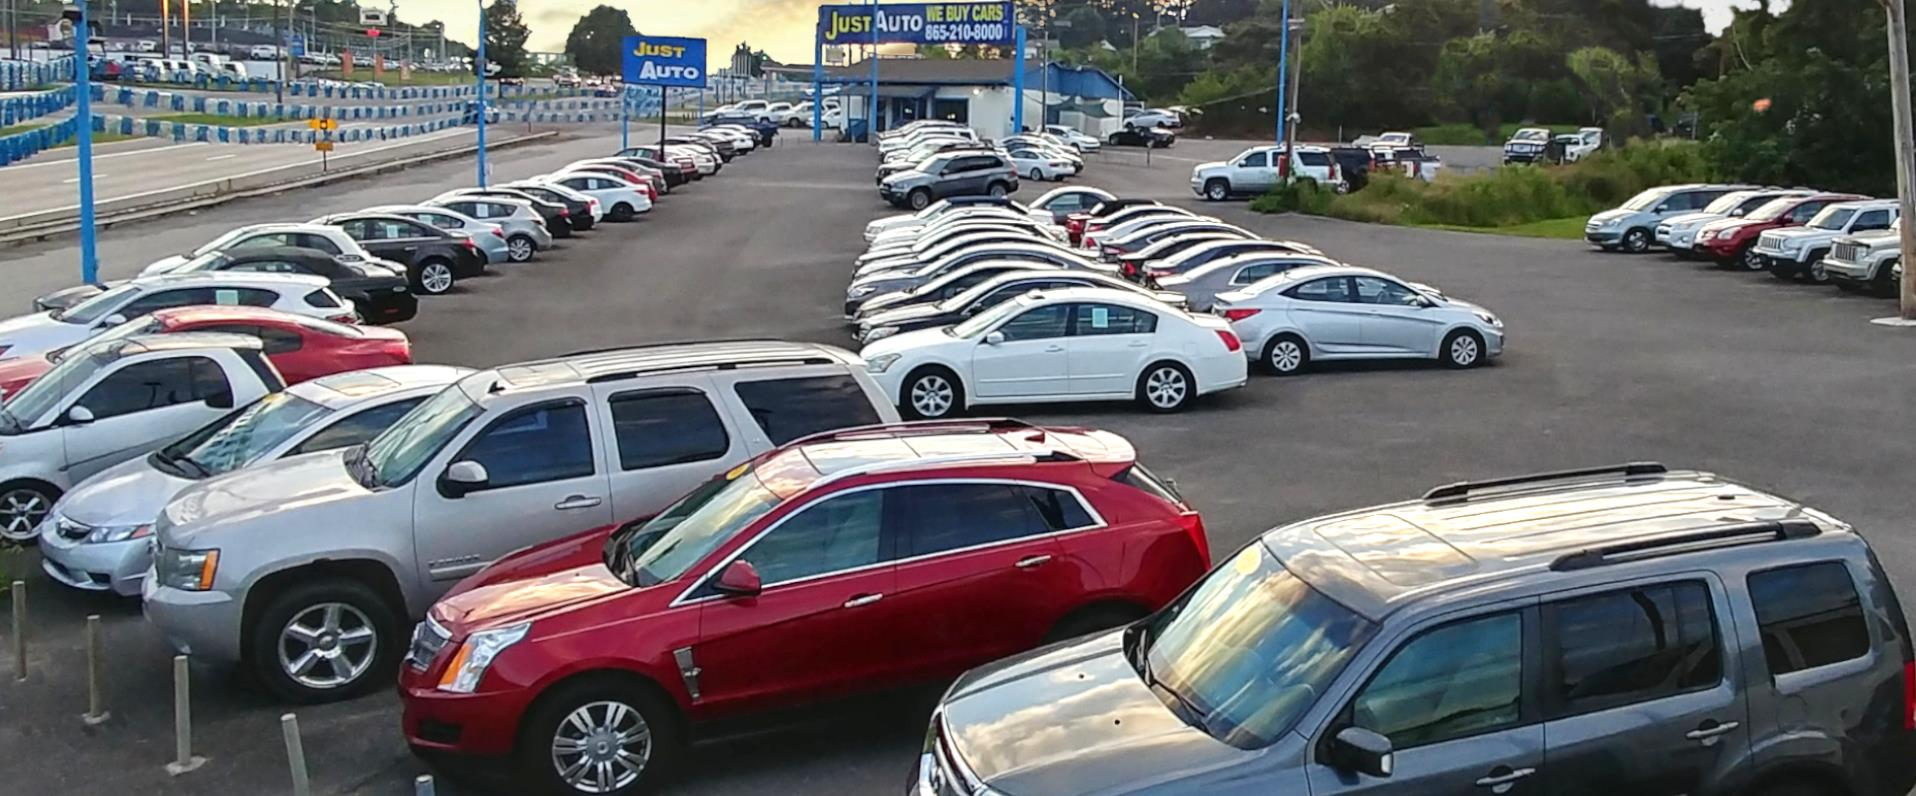 Knoxville Used Cars >> Used Cars Knoxville Tn Used Cars Trucks Tn Just Auto